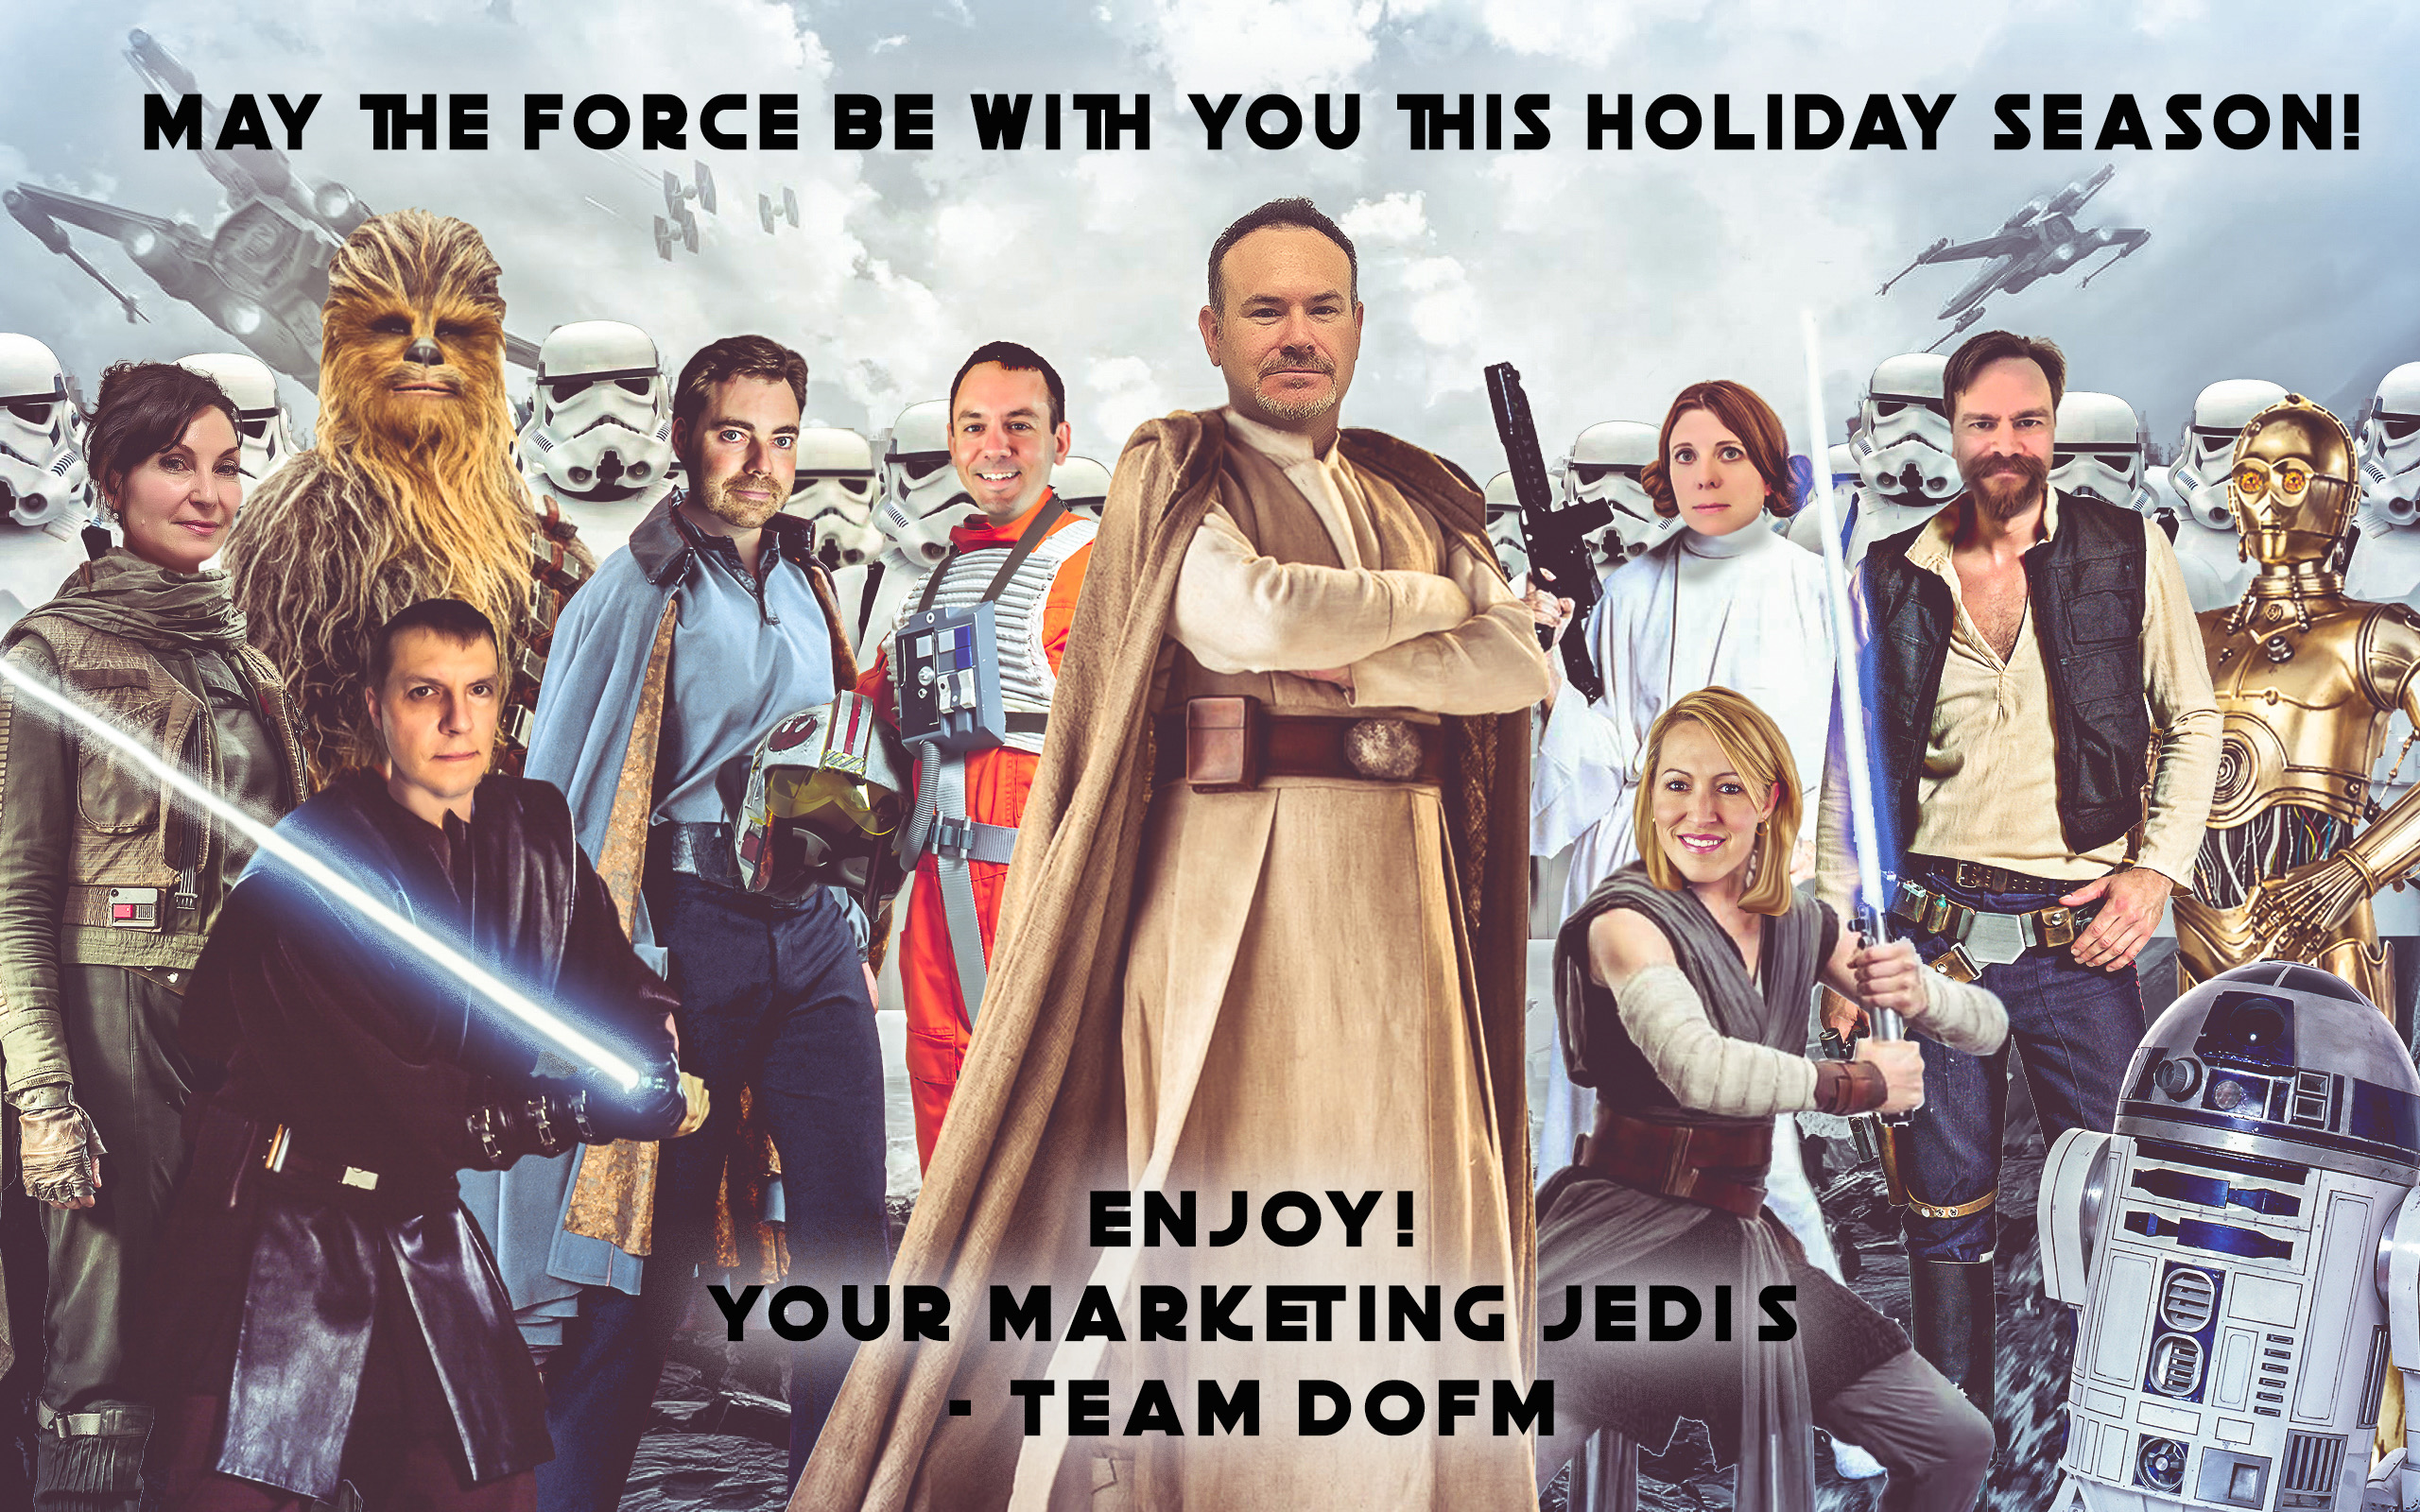 Happy Holidays from The Department of Marketing - DofM